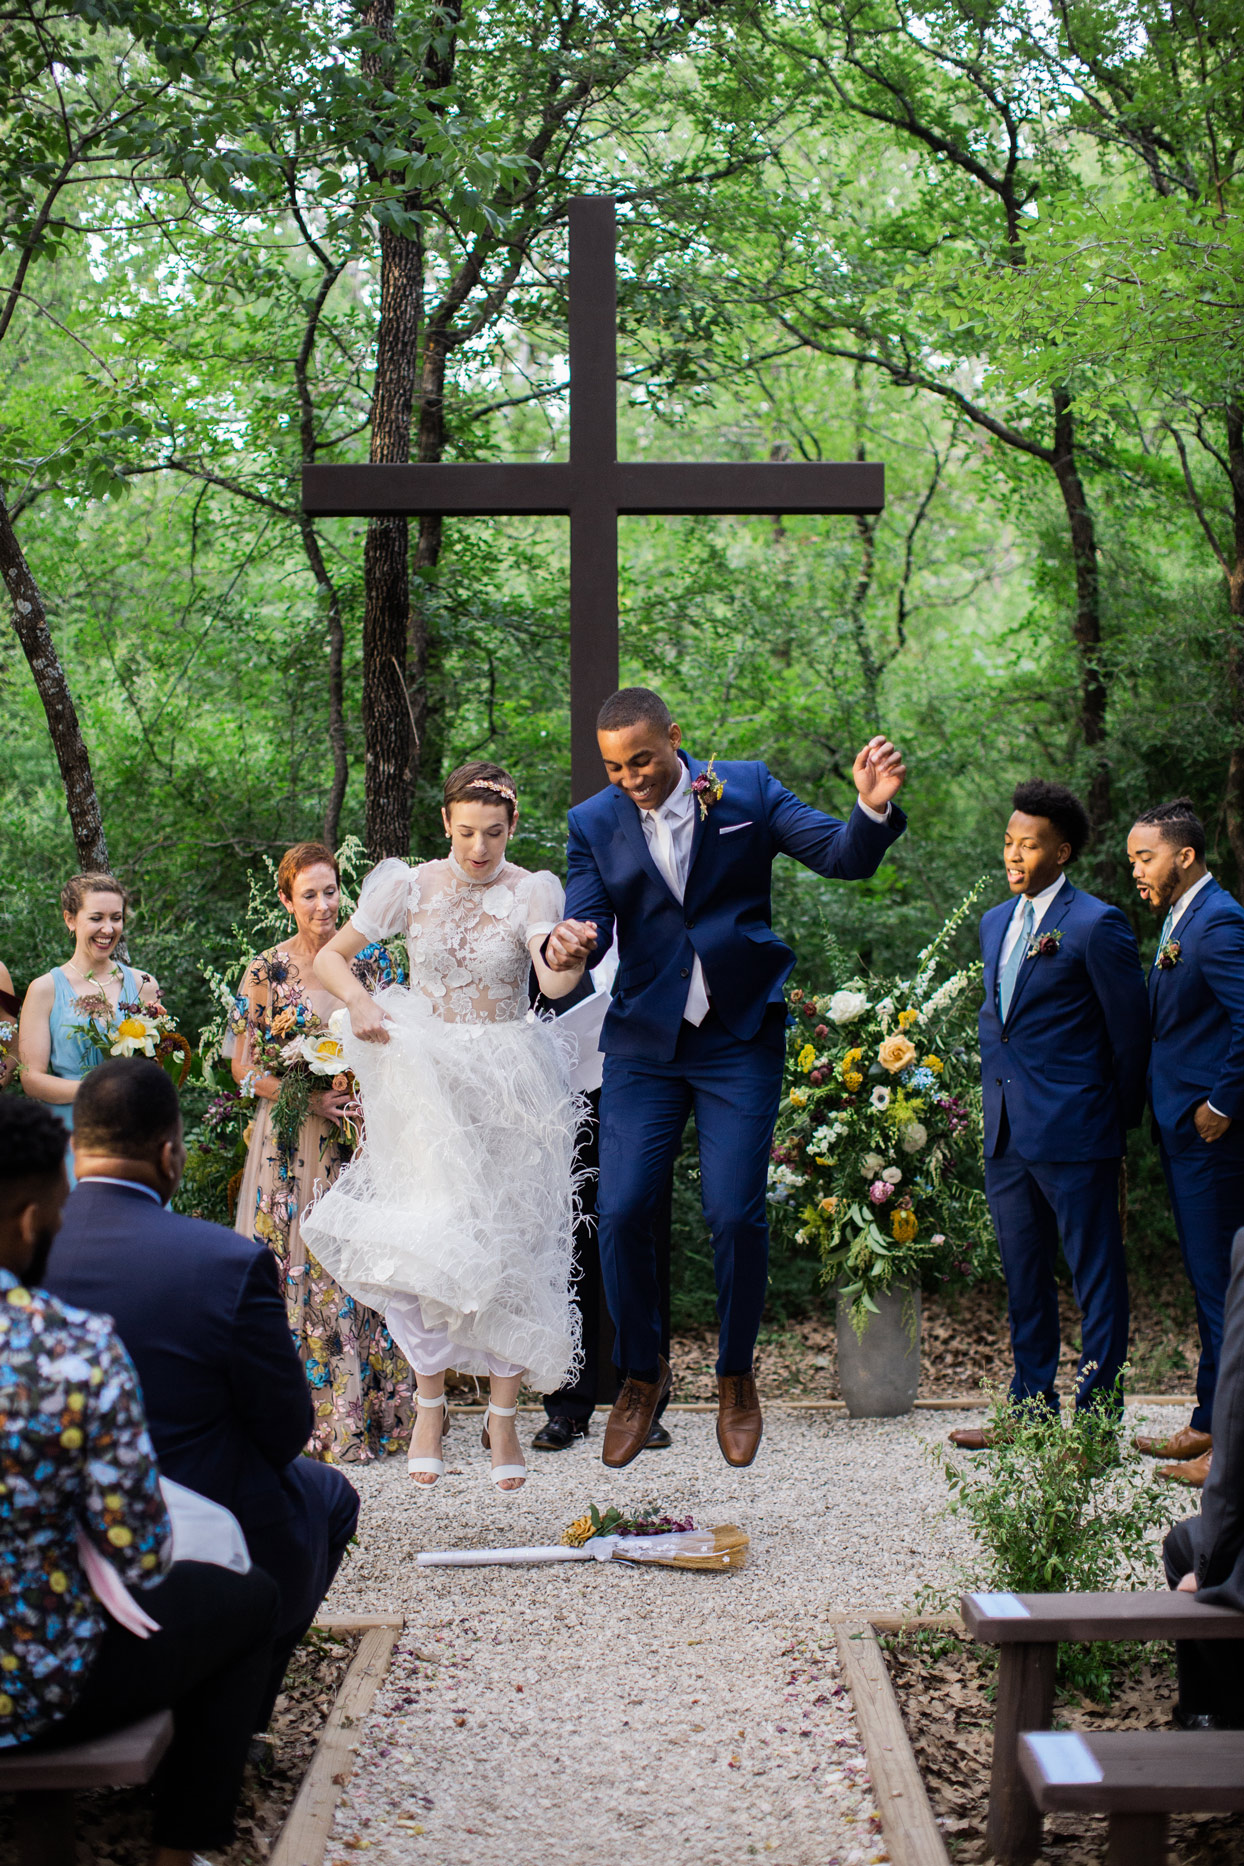 Bride and groom jumping over a broom while wedding party and guests watch